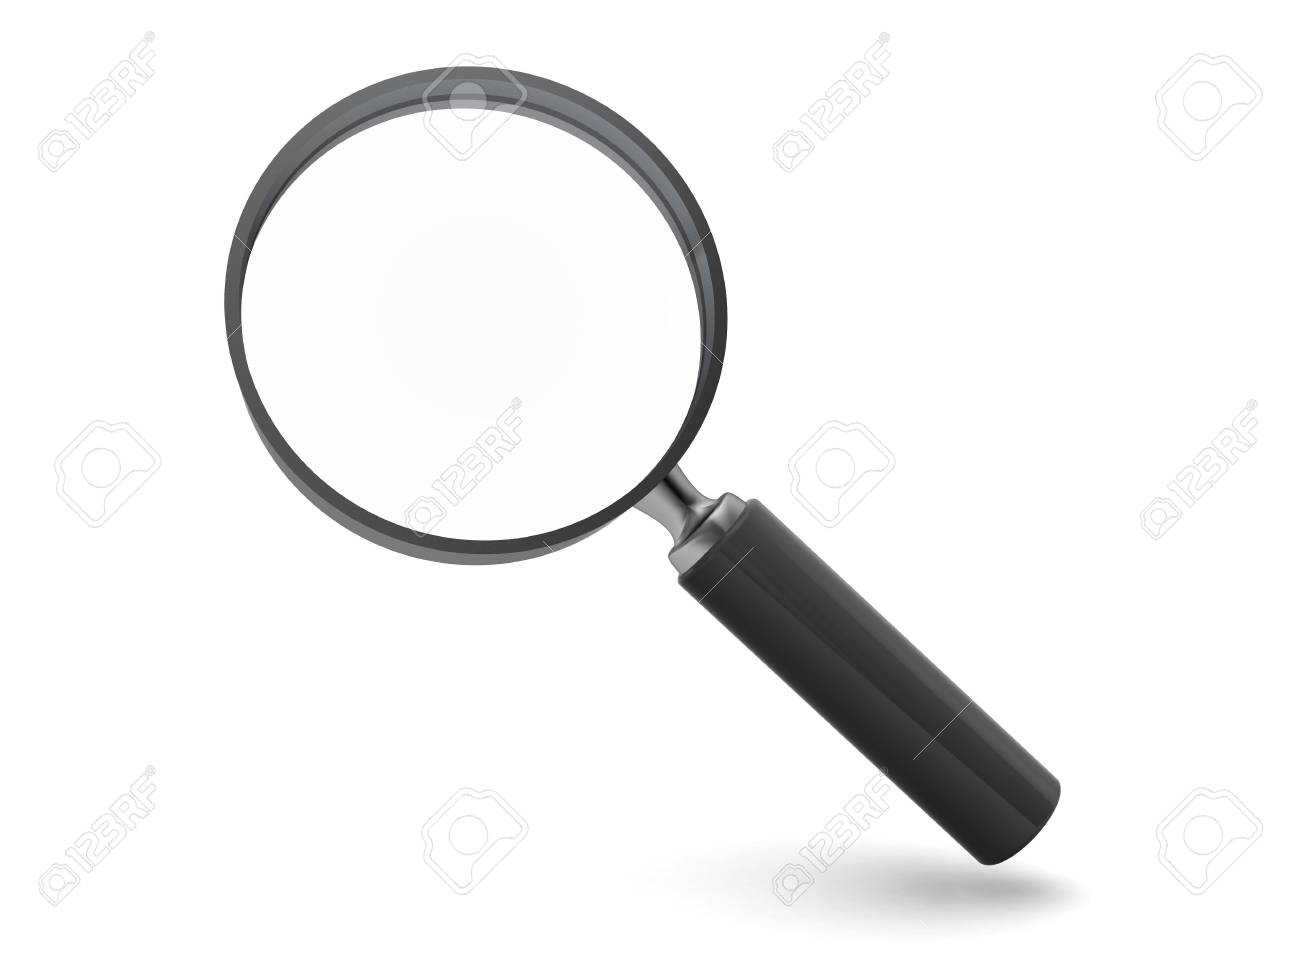 3d illustration of magnify glass isolated over white background Stock Illustration - 5653388